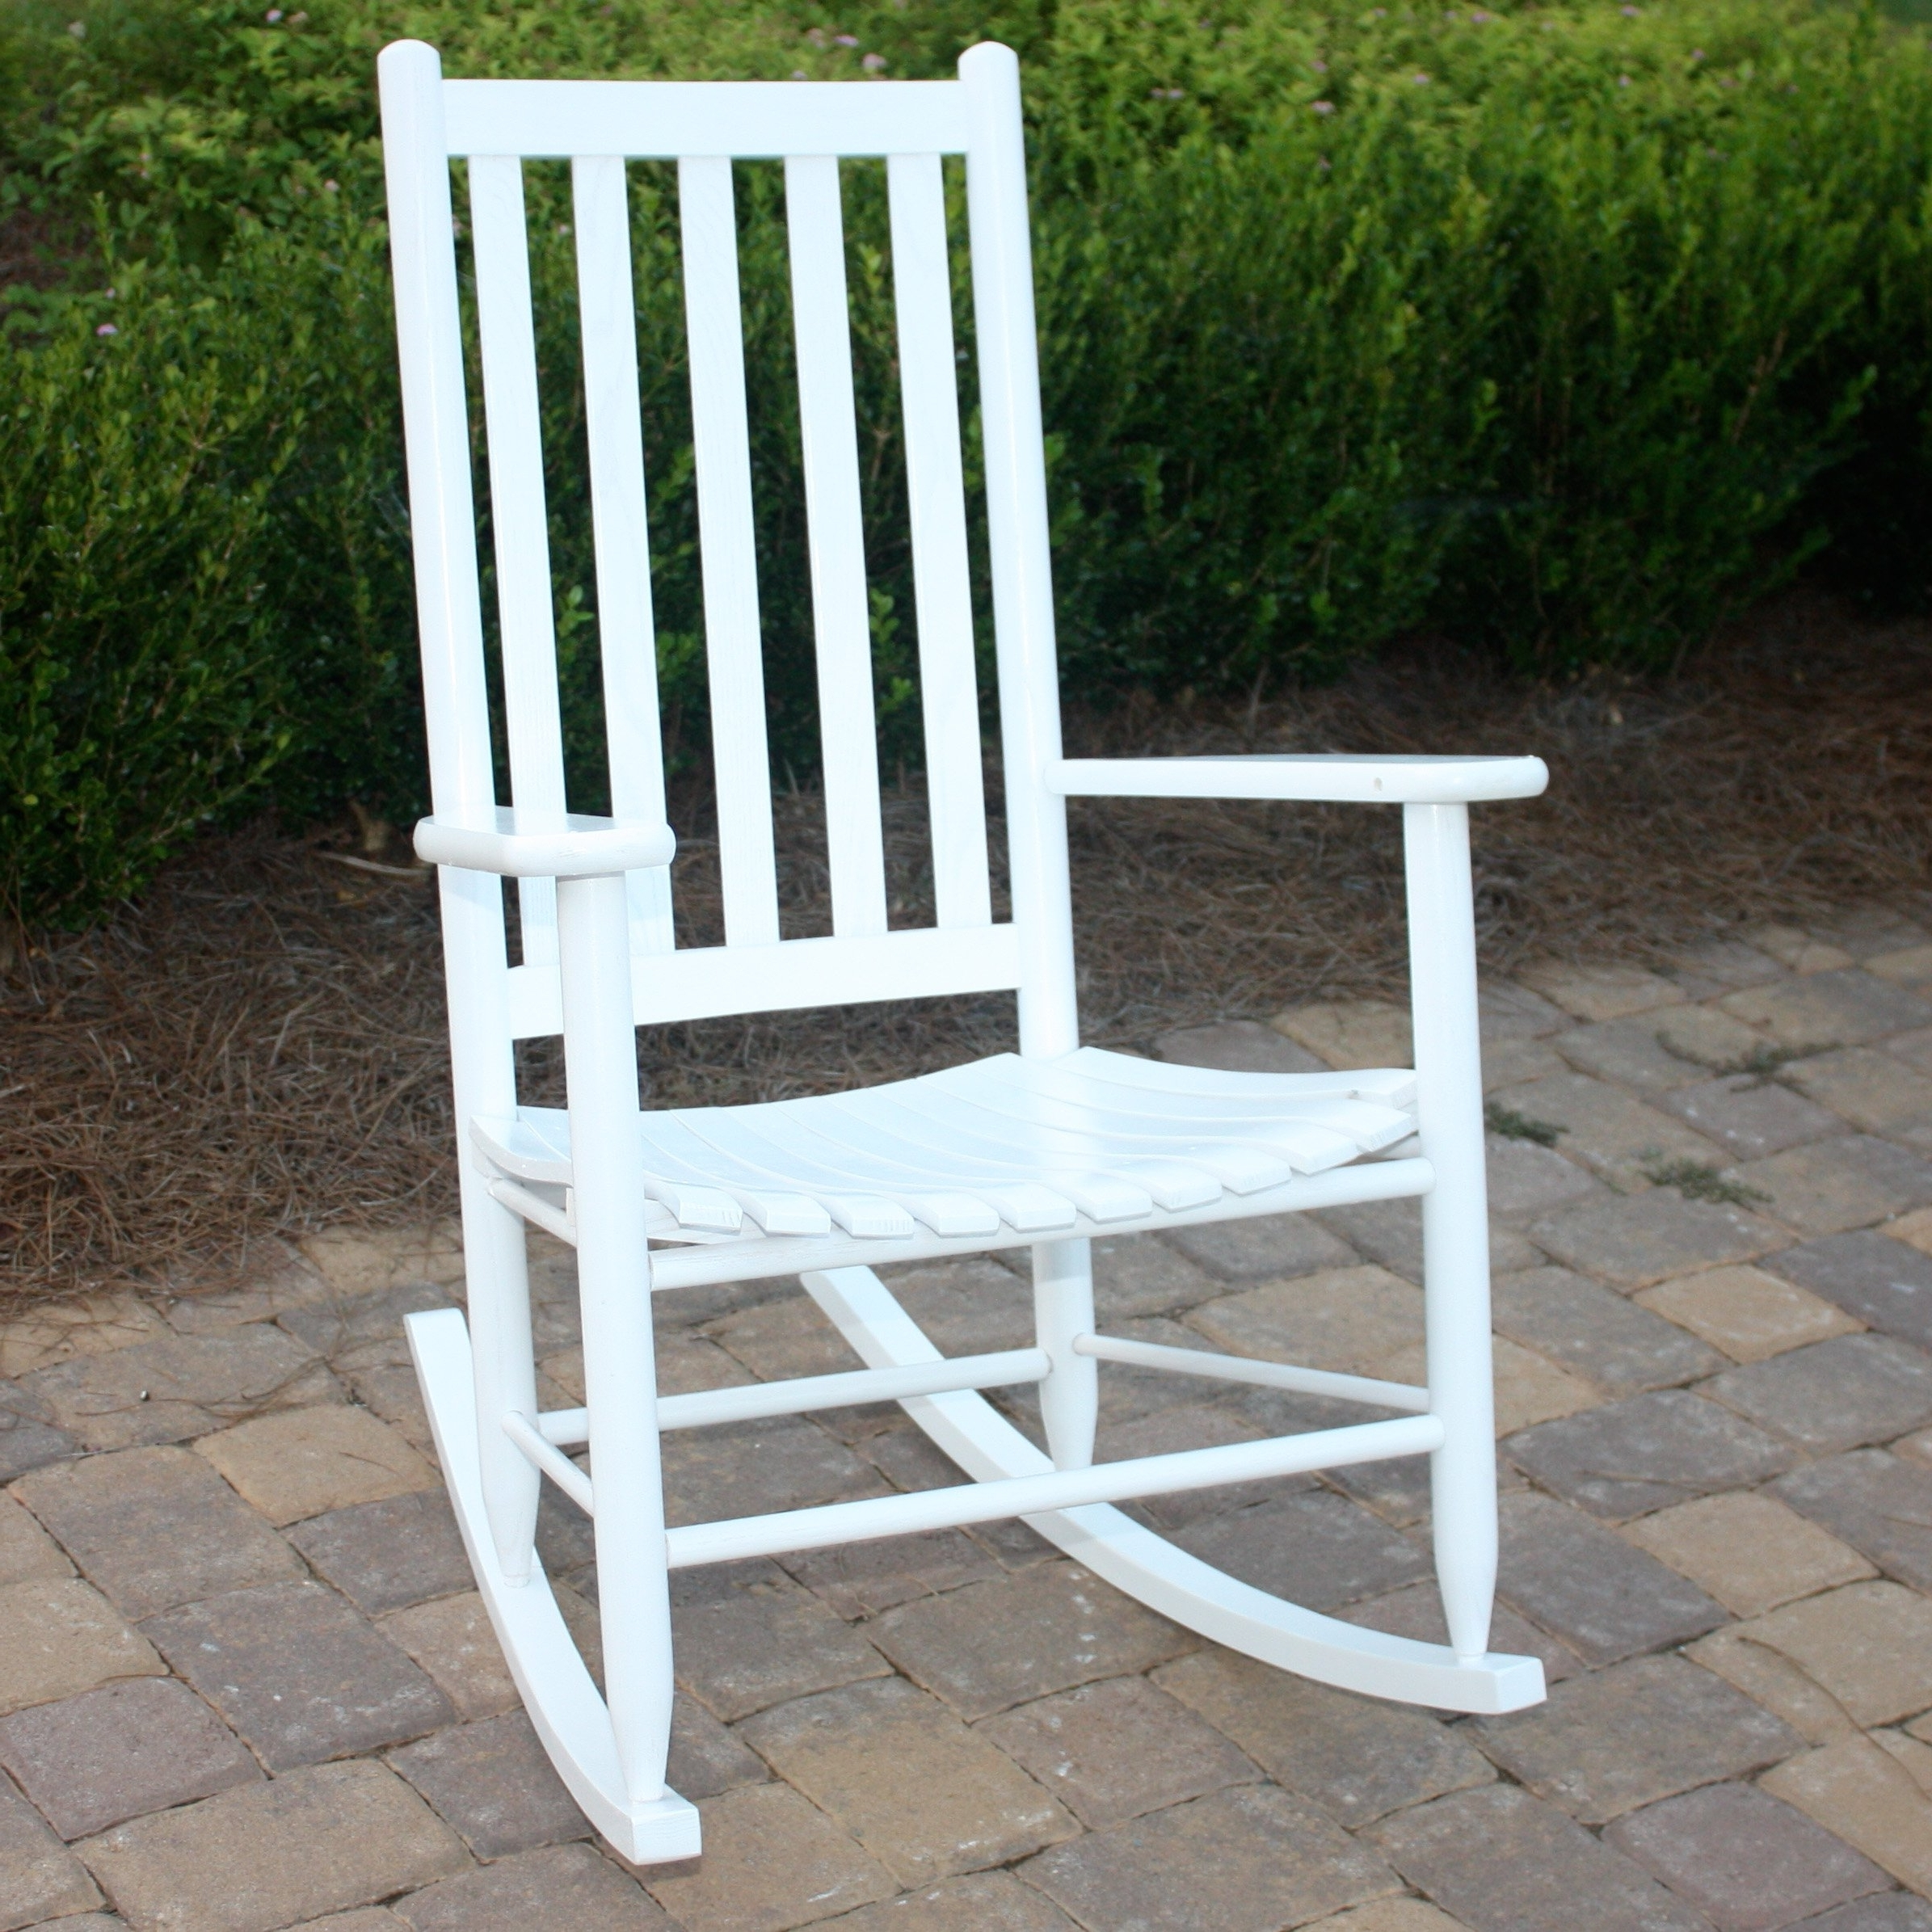 Dixie Seating Company Outdoor/indoor Georgetown Slat Rocking Chair With Well Liked Outdoor Rocking Chairs (View 2 of 15)